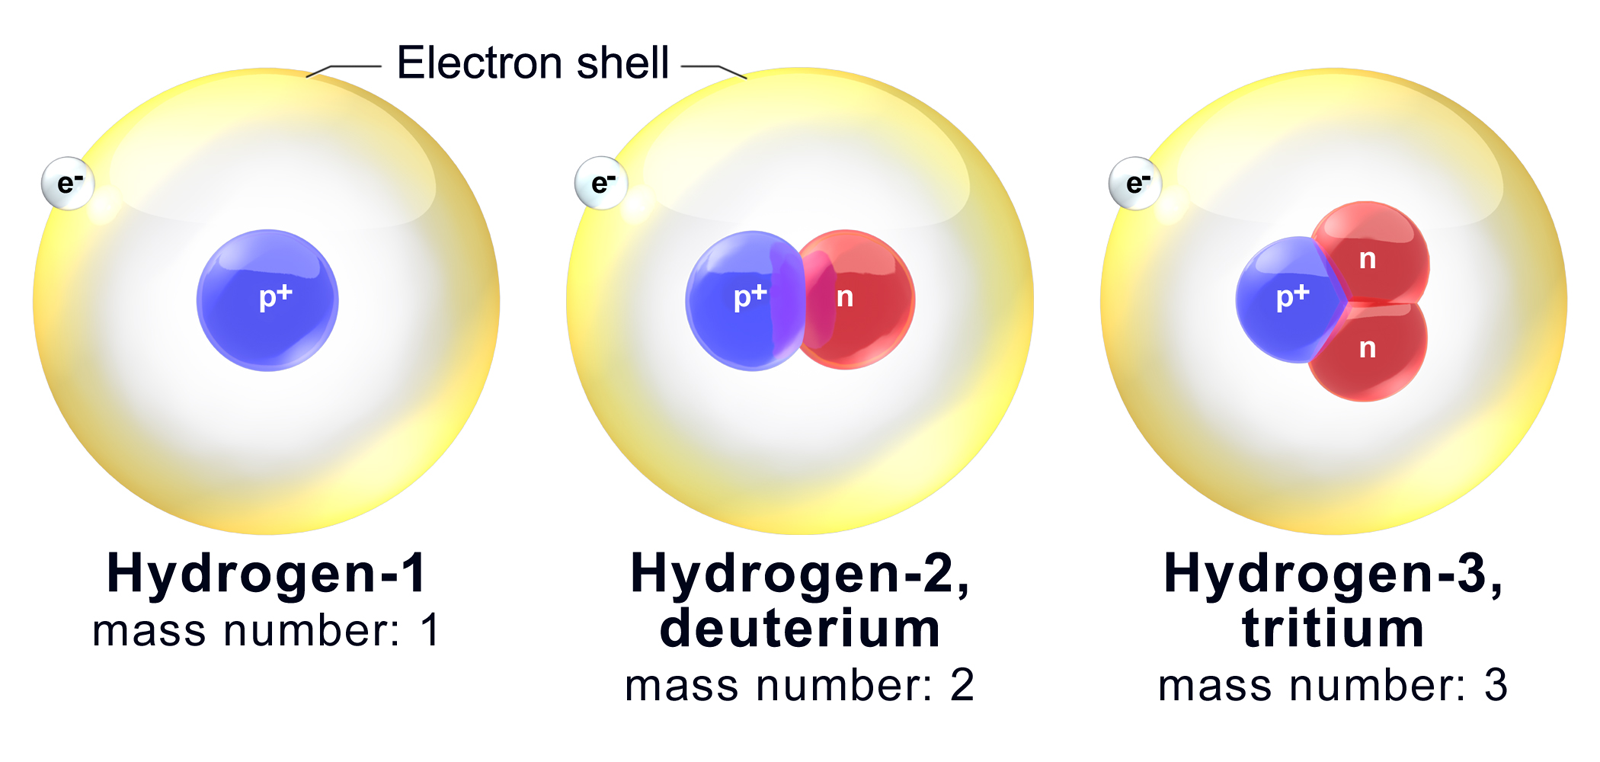 Atomic Mass and Composition of Nucleus: Concepts, Videos